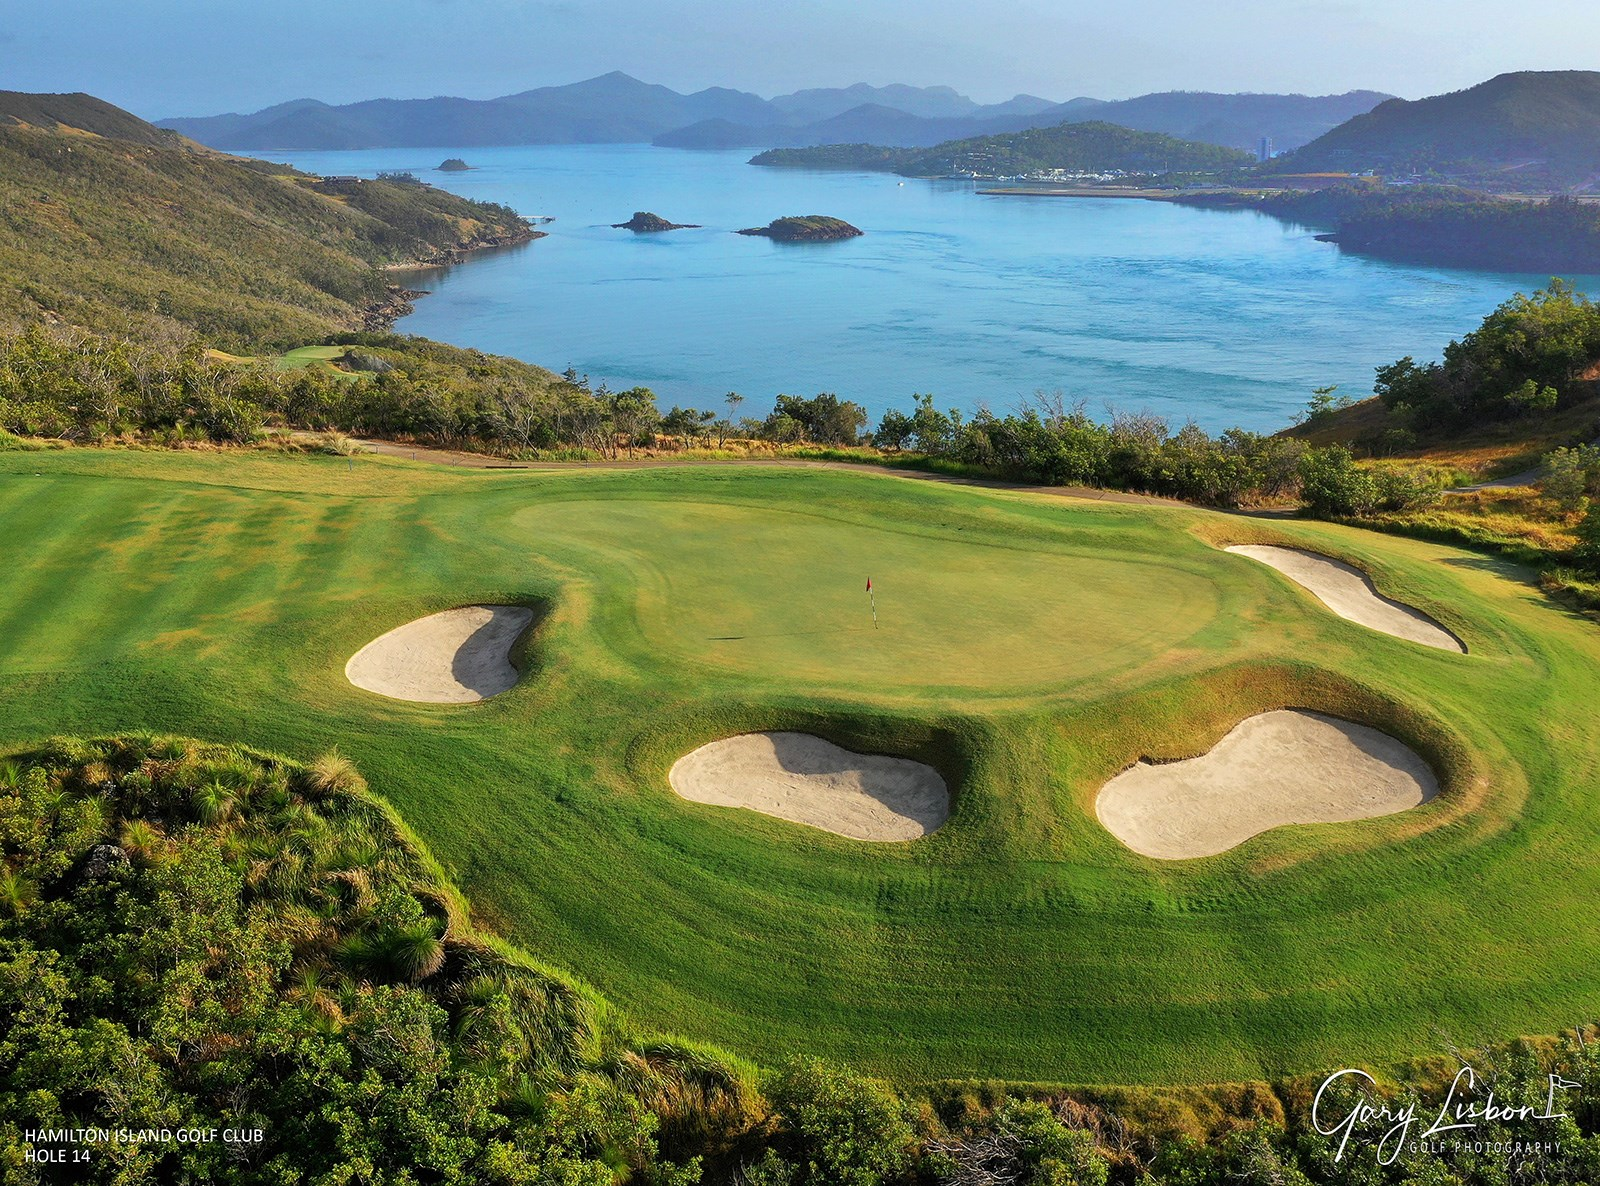 Hamilton Island Golf Club Hole 14